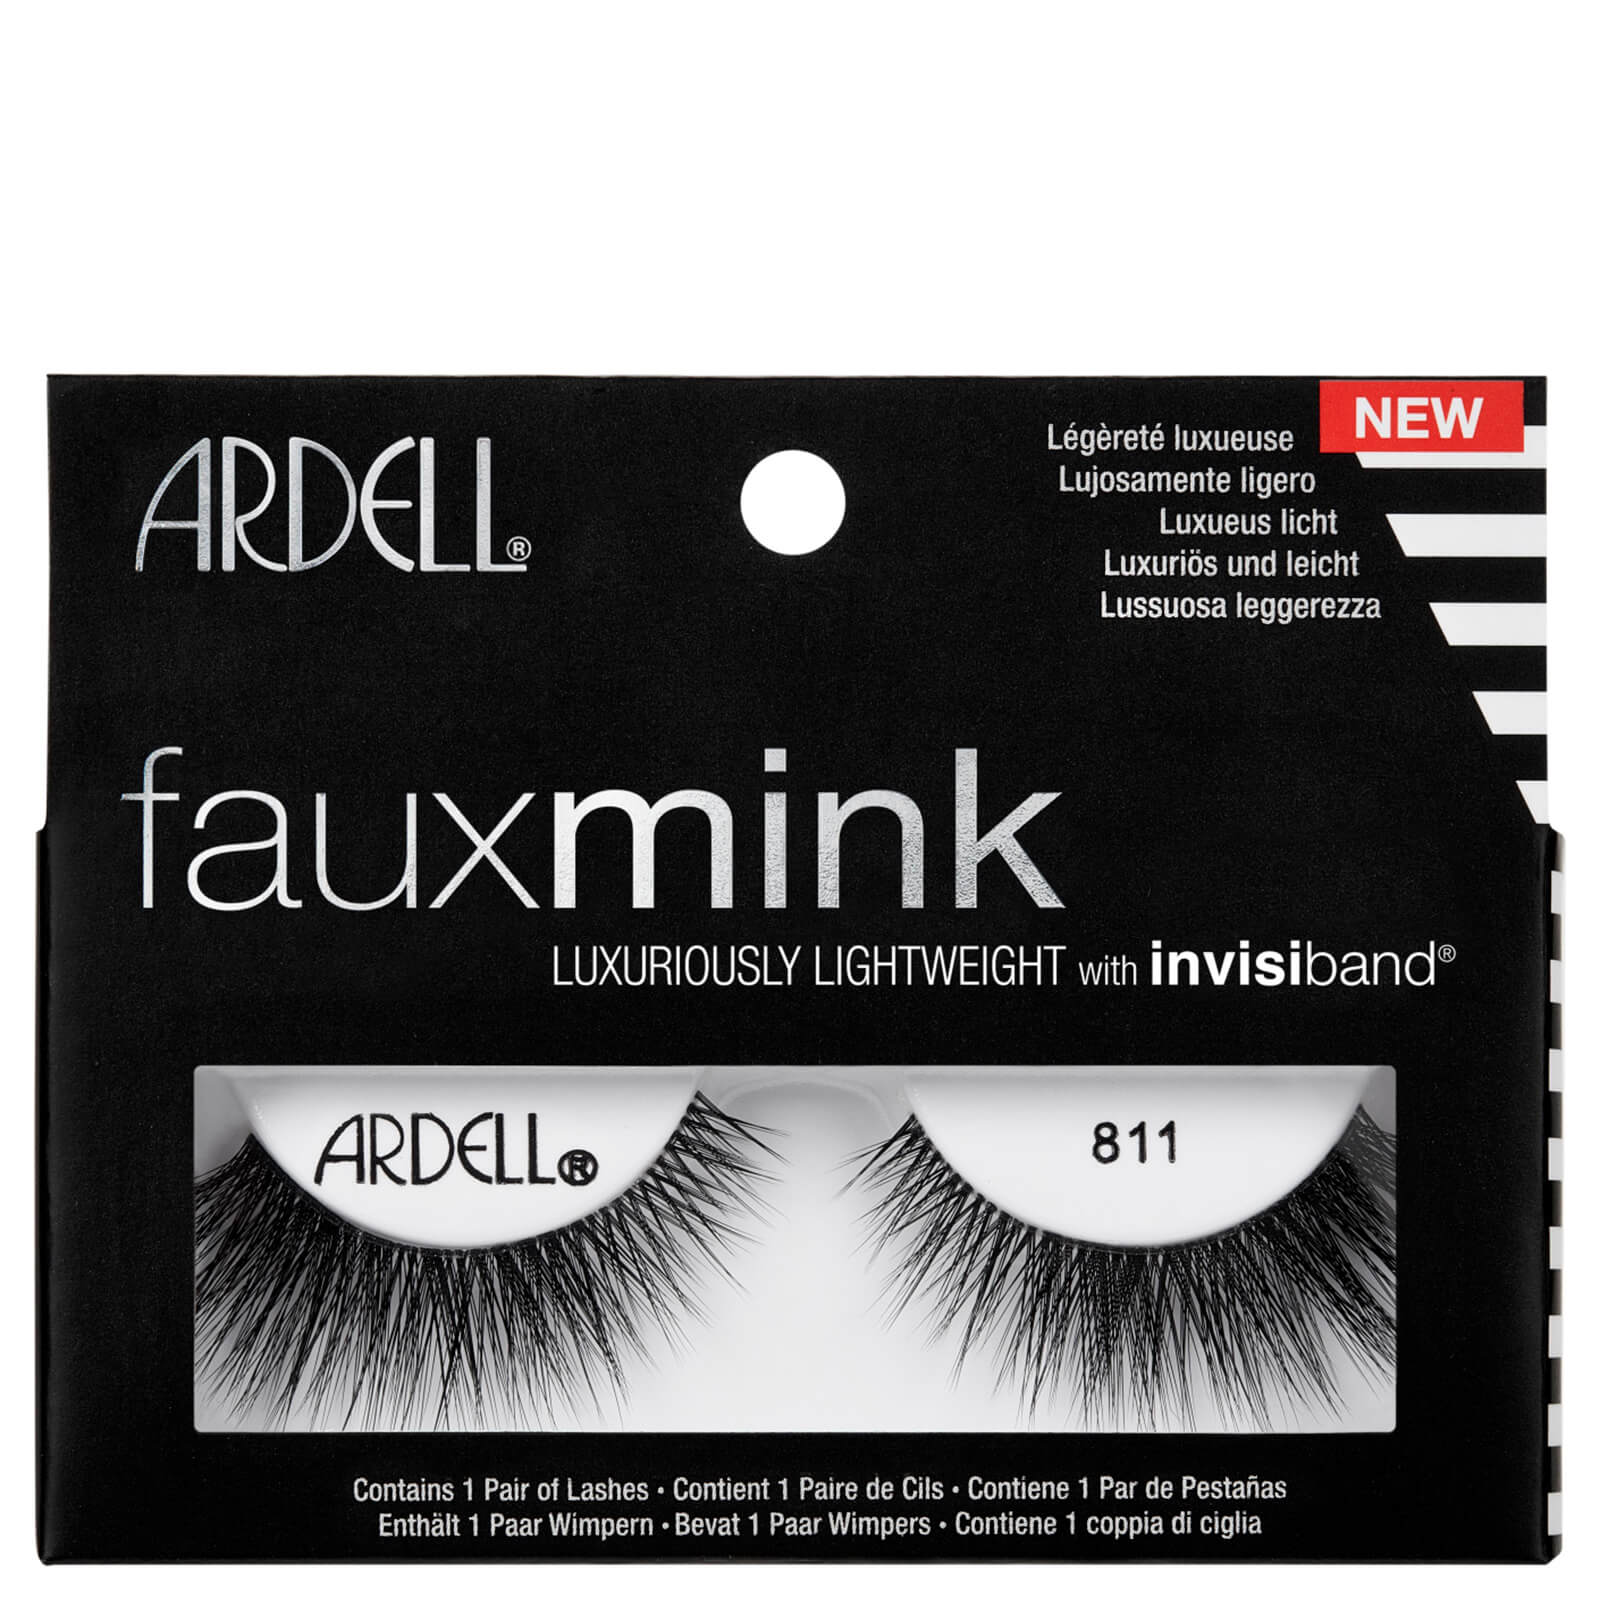 c3730cdf5f7 Ardell Faux Mink 811 Lashes - Black | Free Shipping | Lookfantastic